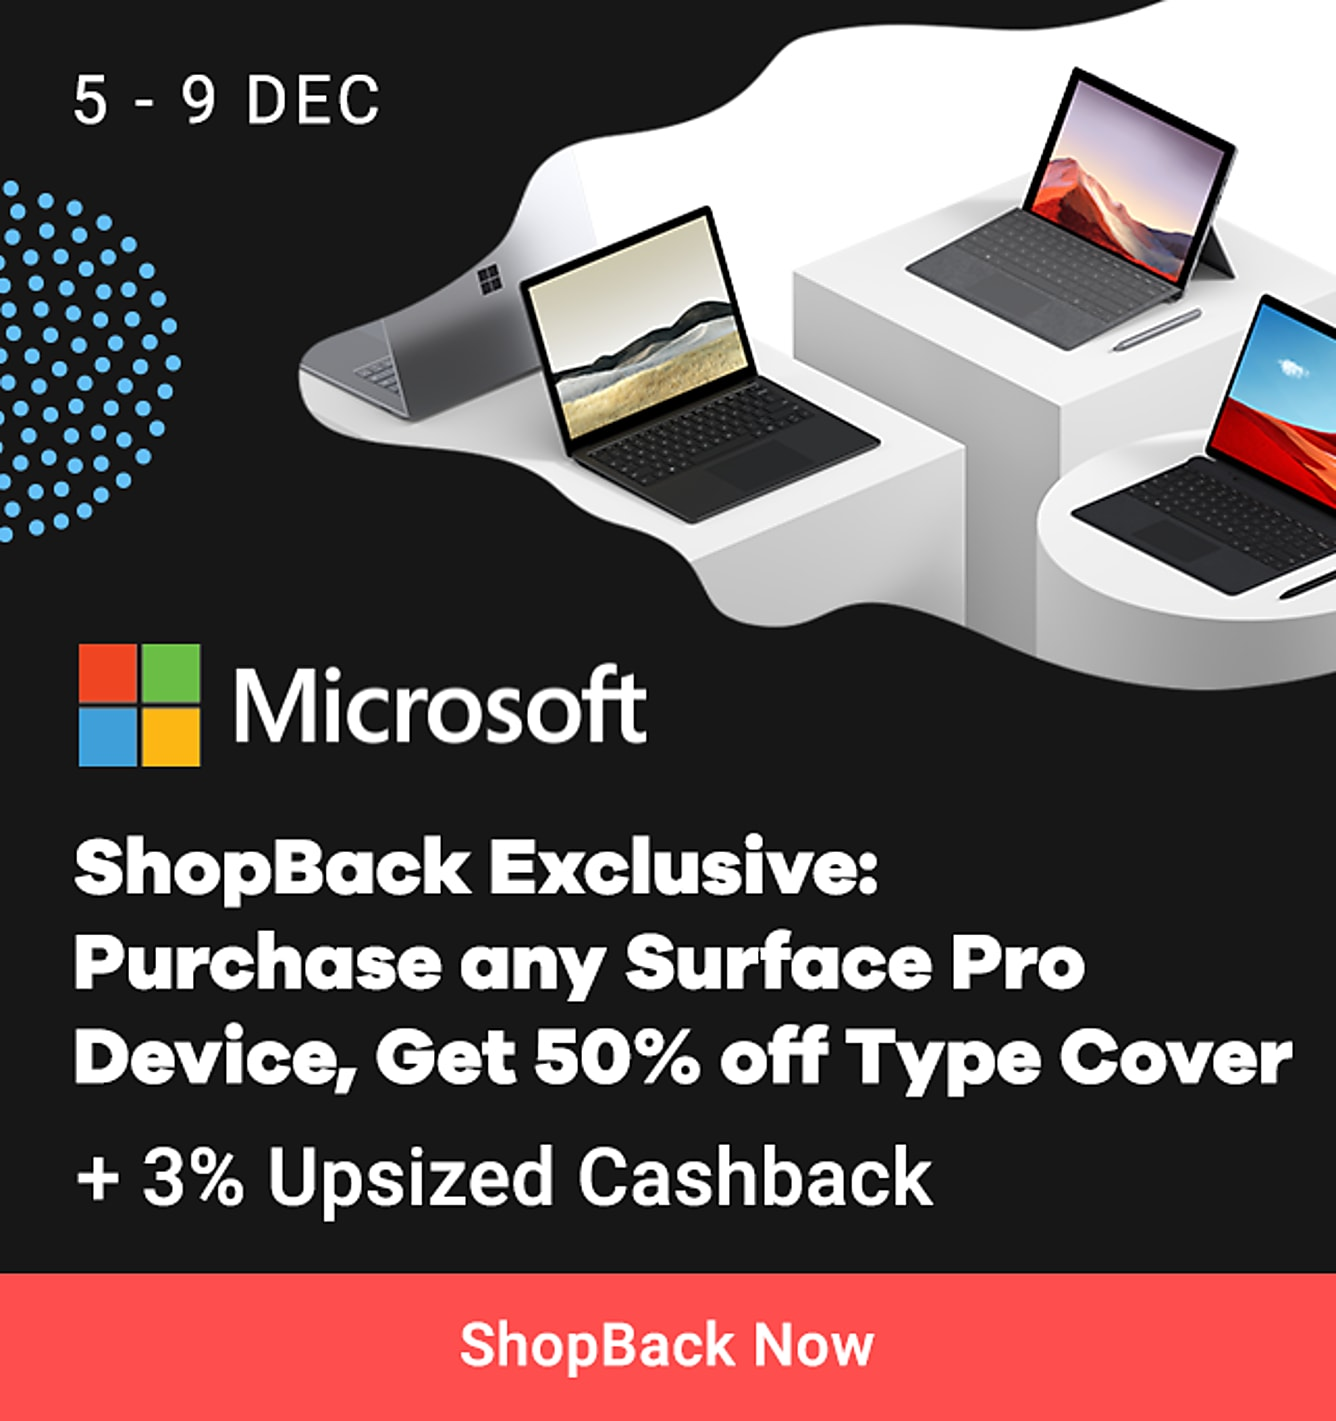 Microsoft_Microsoft Flash Sale_5 Dec-9 Dec 2019